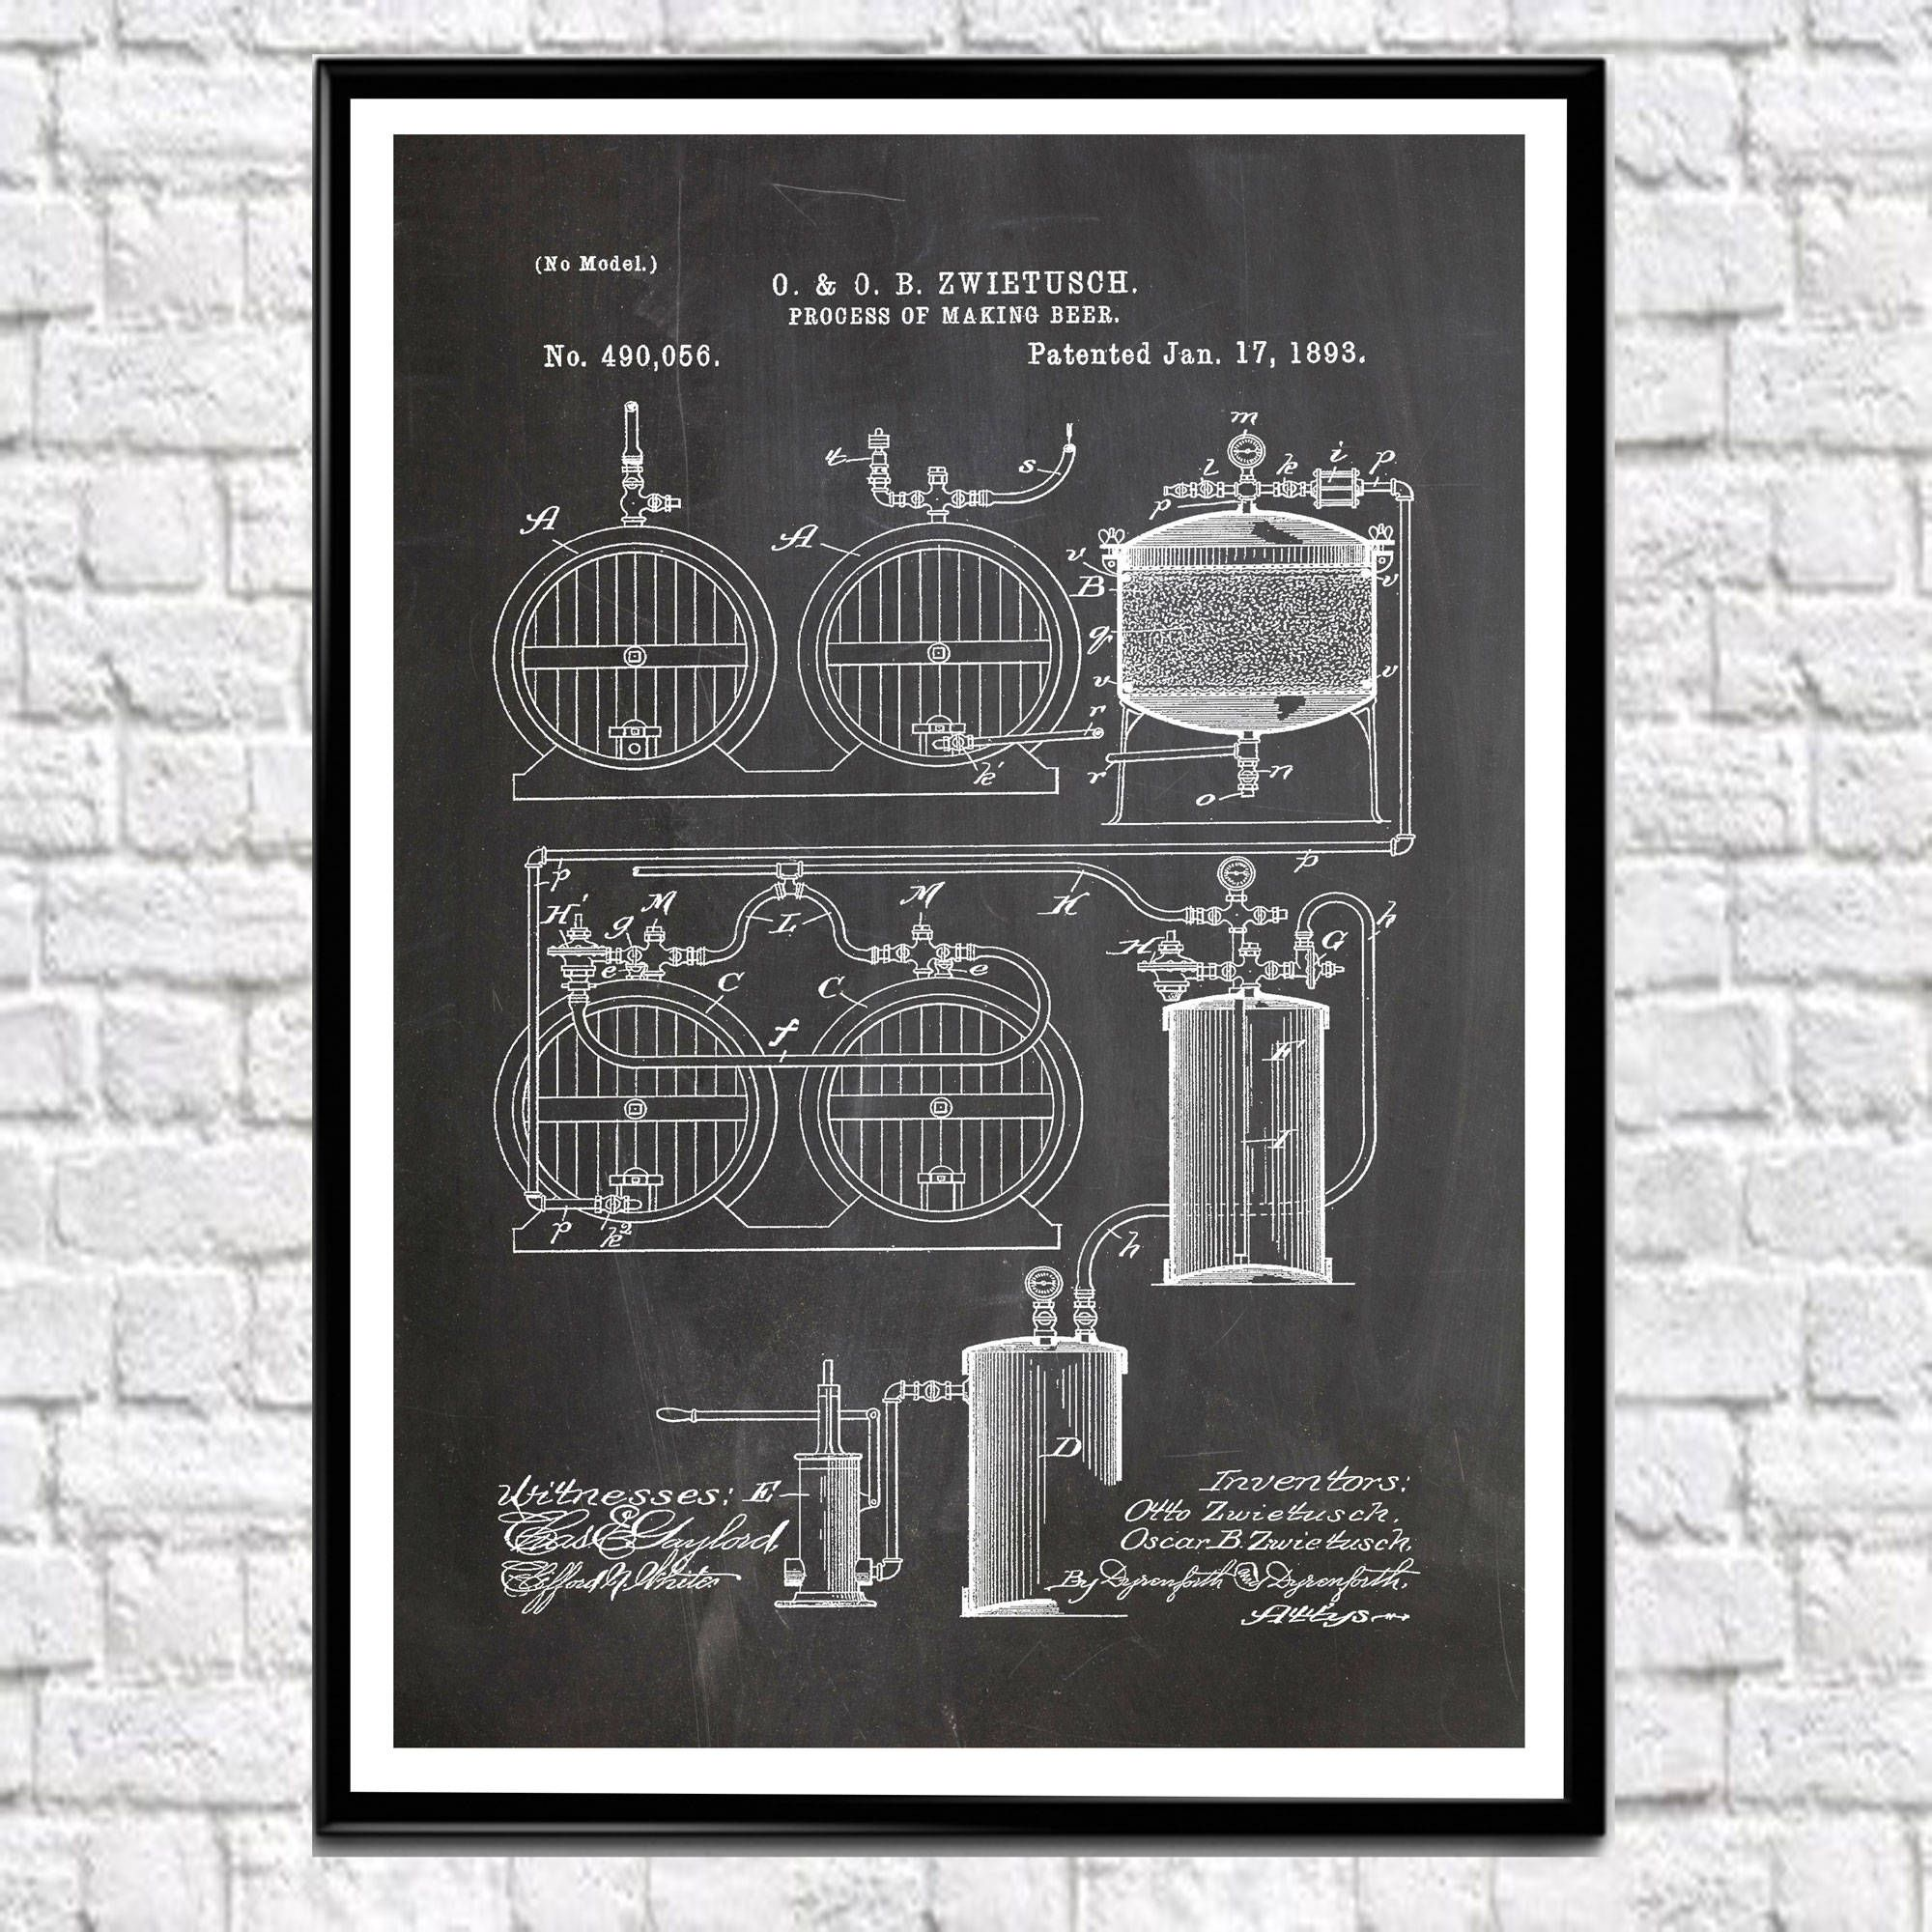 Beer Making Process Patent Wall Art Poster Decor For Bar Craft Brewing Posters Wb130